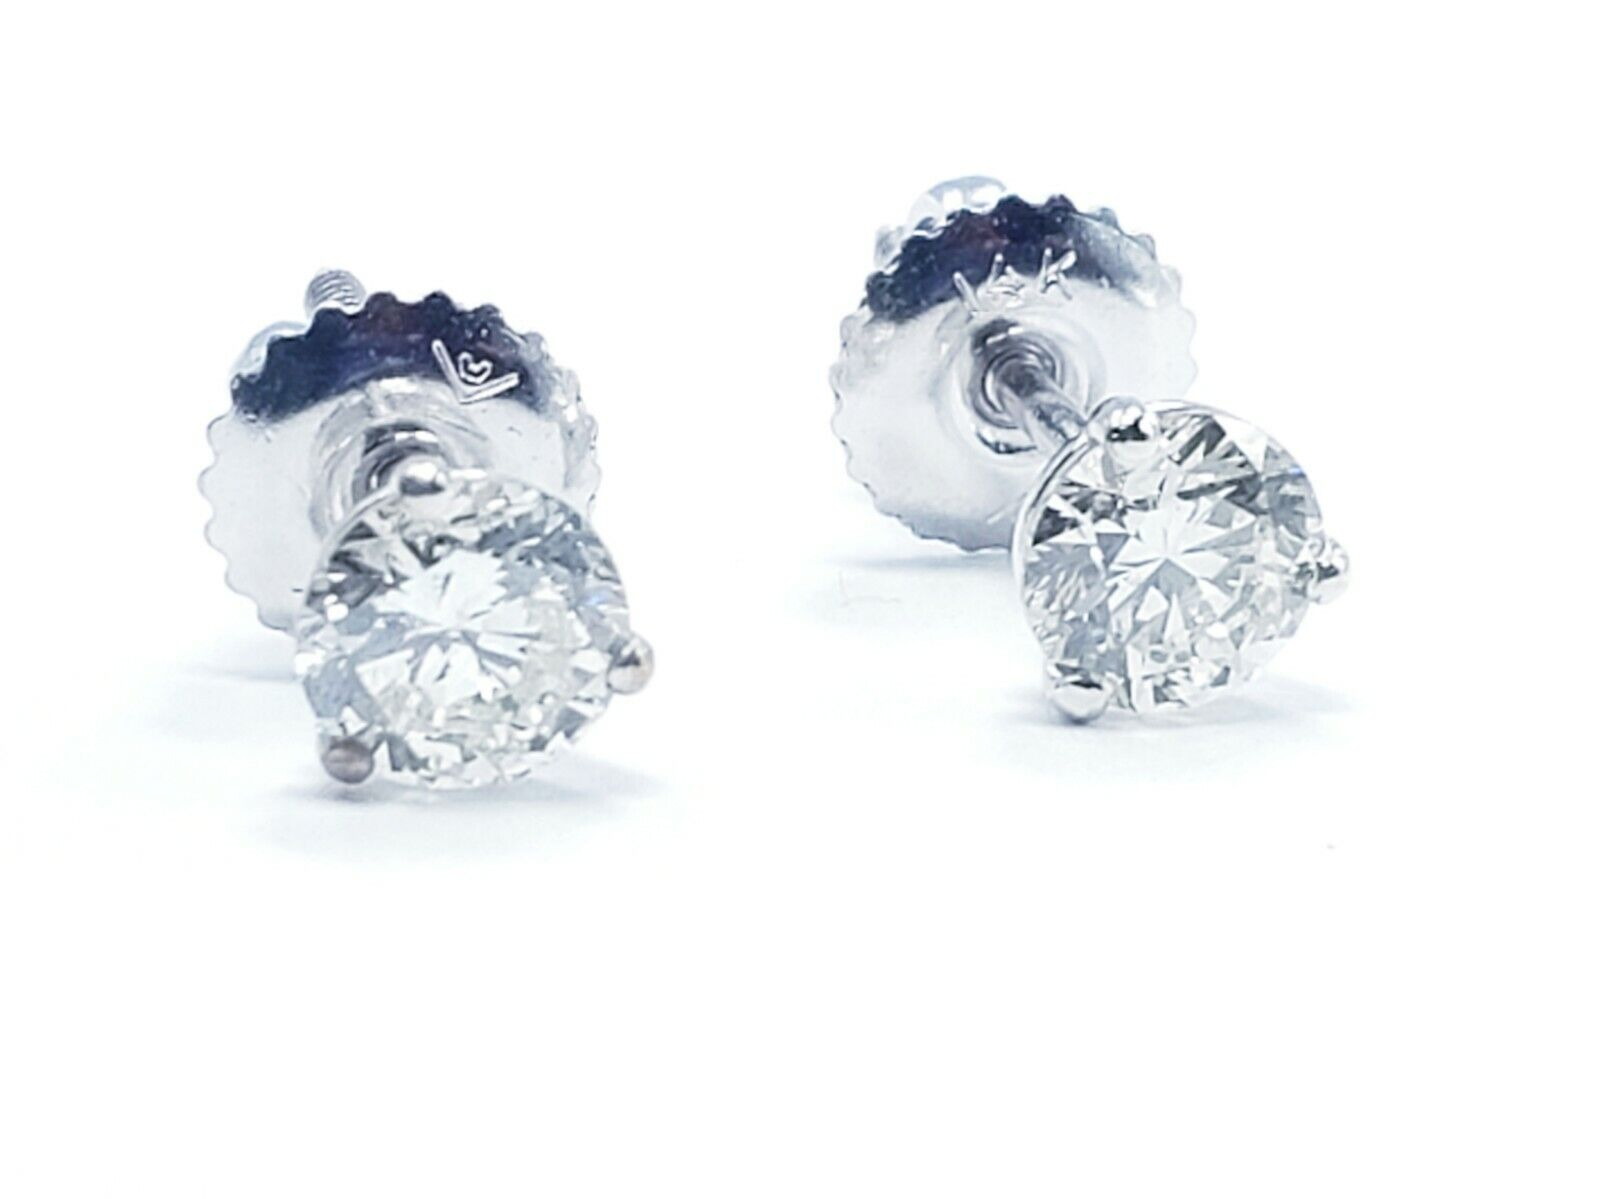 1.88ctw Round Brilliant Natural Diamond Studs Earrings GIA Appraisal F Color I1